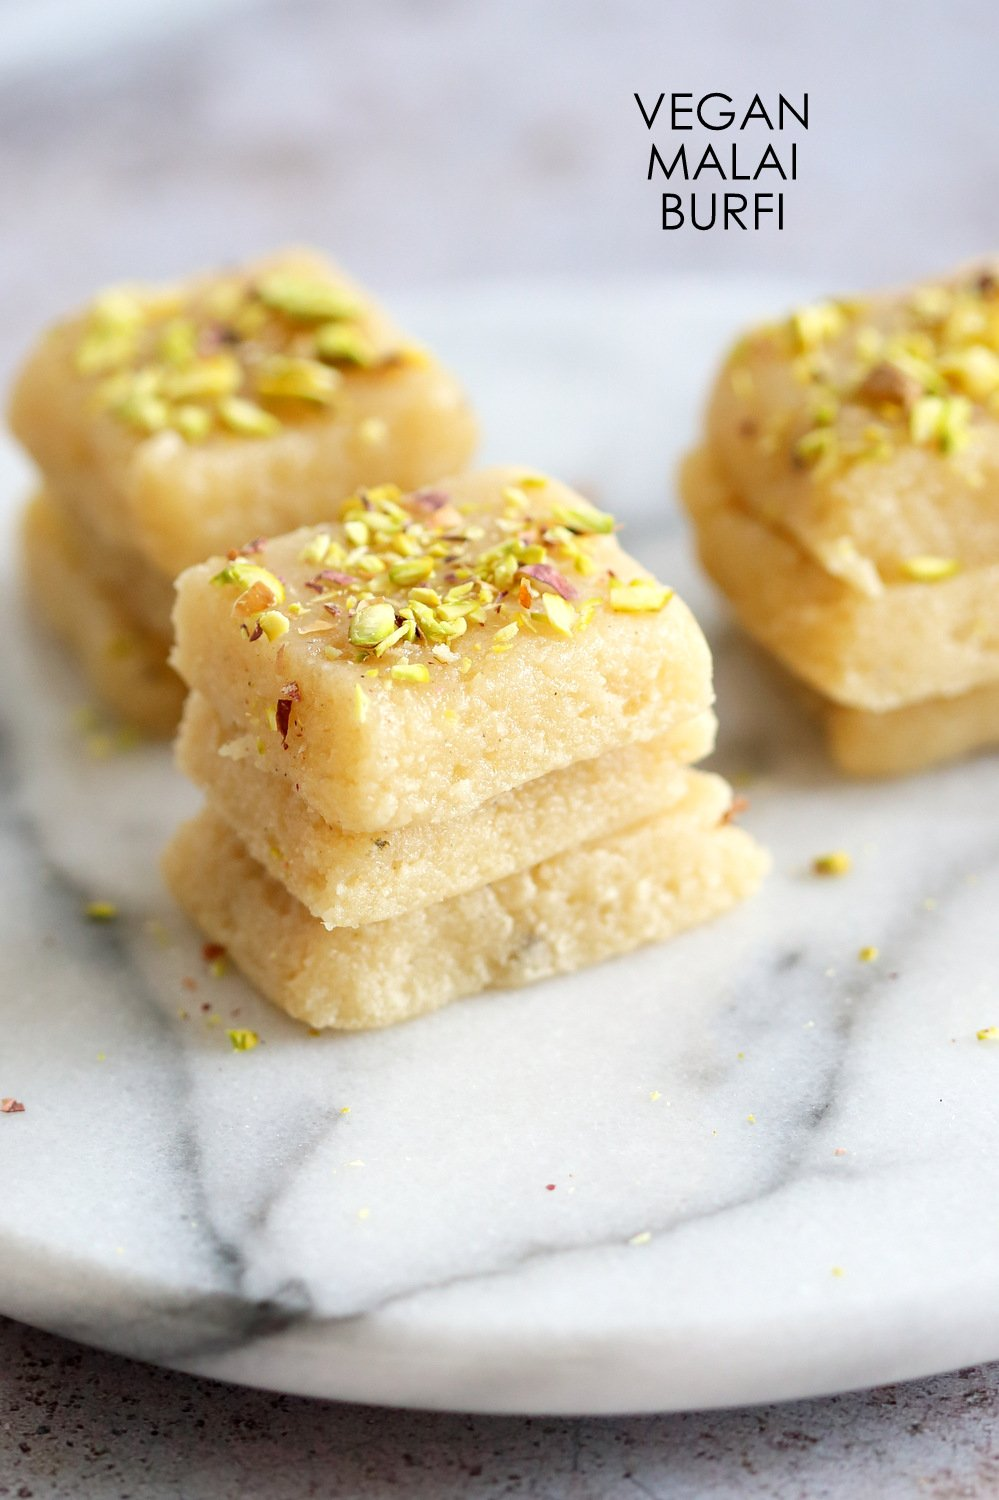 Vegan Malai Burfi (Milk Cake)- Indian Fudge Bars. Dairy-free Burfi For Indian Festivals. Creamy Cardamom Fudge. 8 Ingredient Burfi #VeganRicha #Vegan #Glutenfree #Soyfree #Recipe.